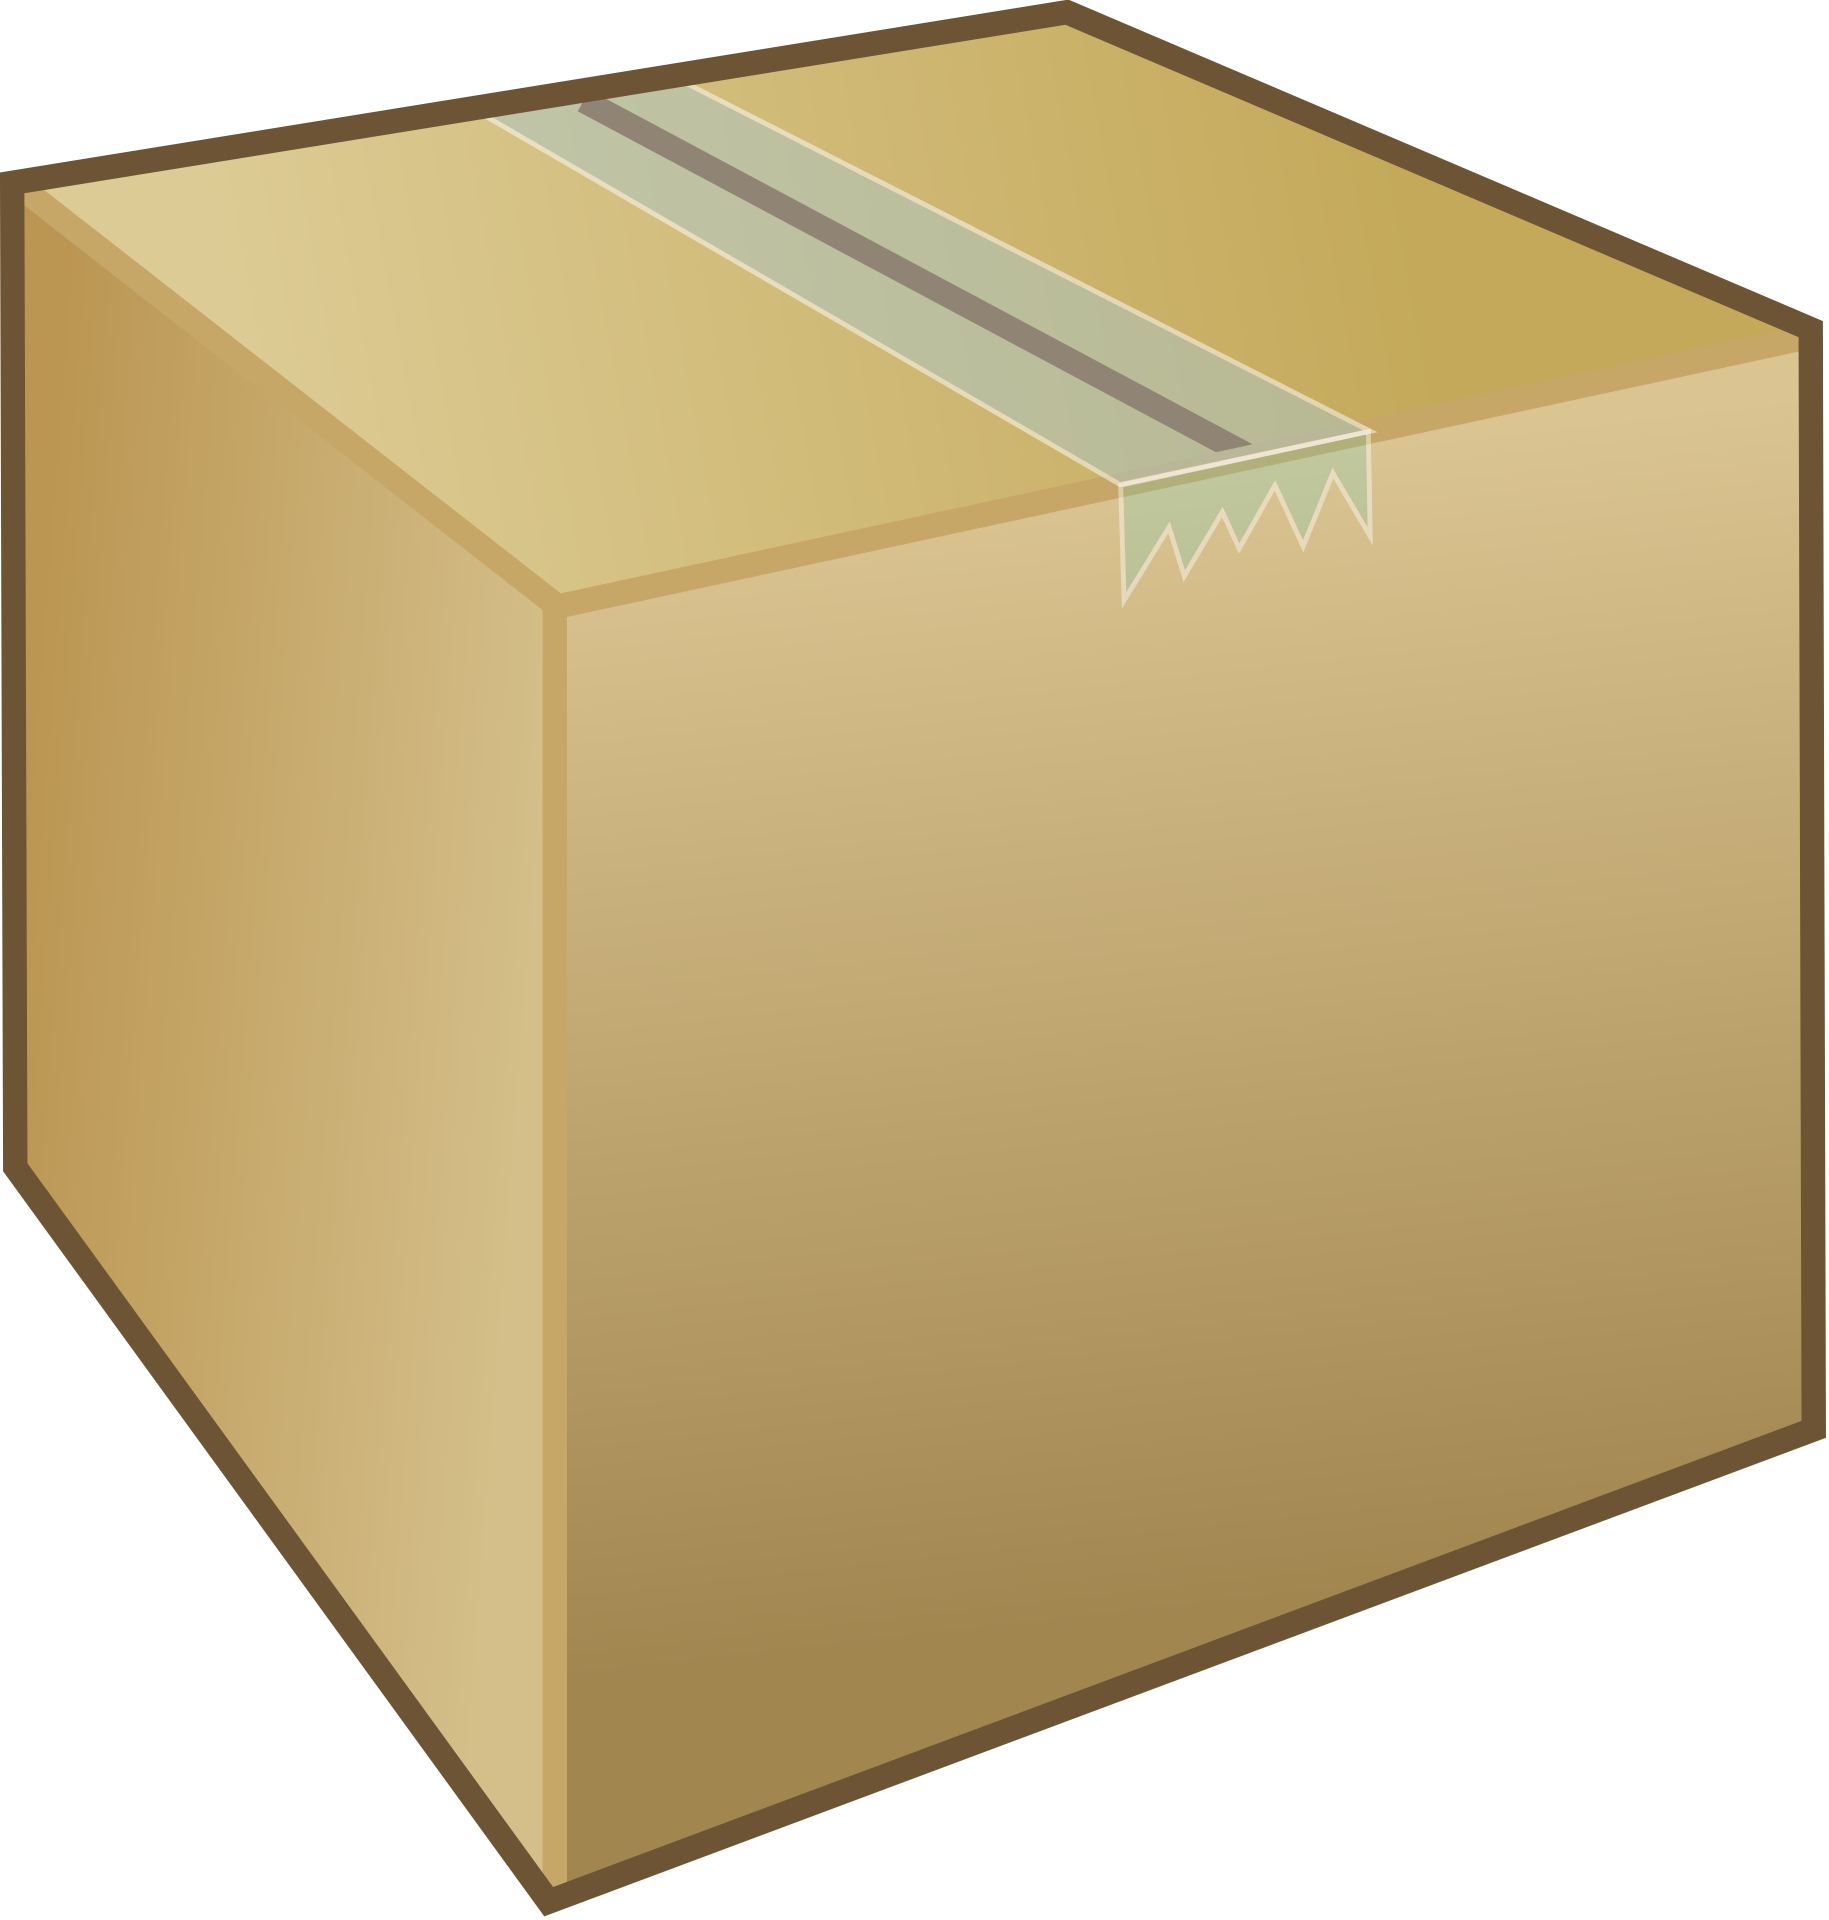 brown box, airtight carboard,carton vector